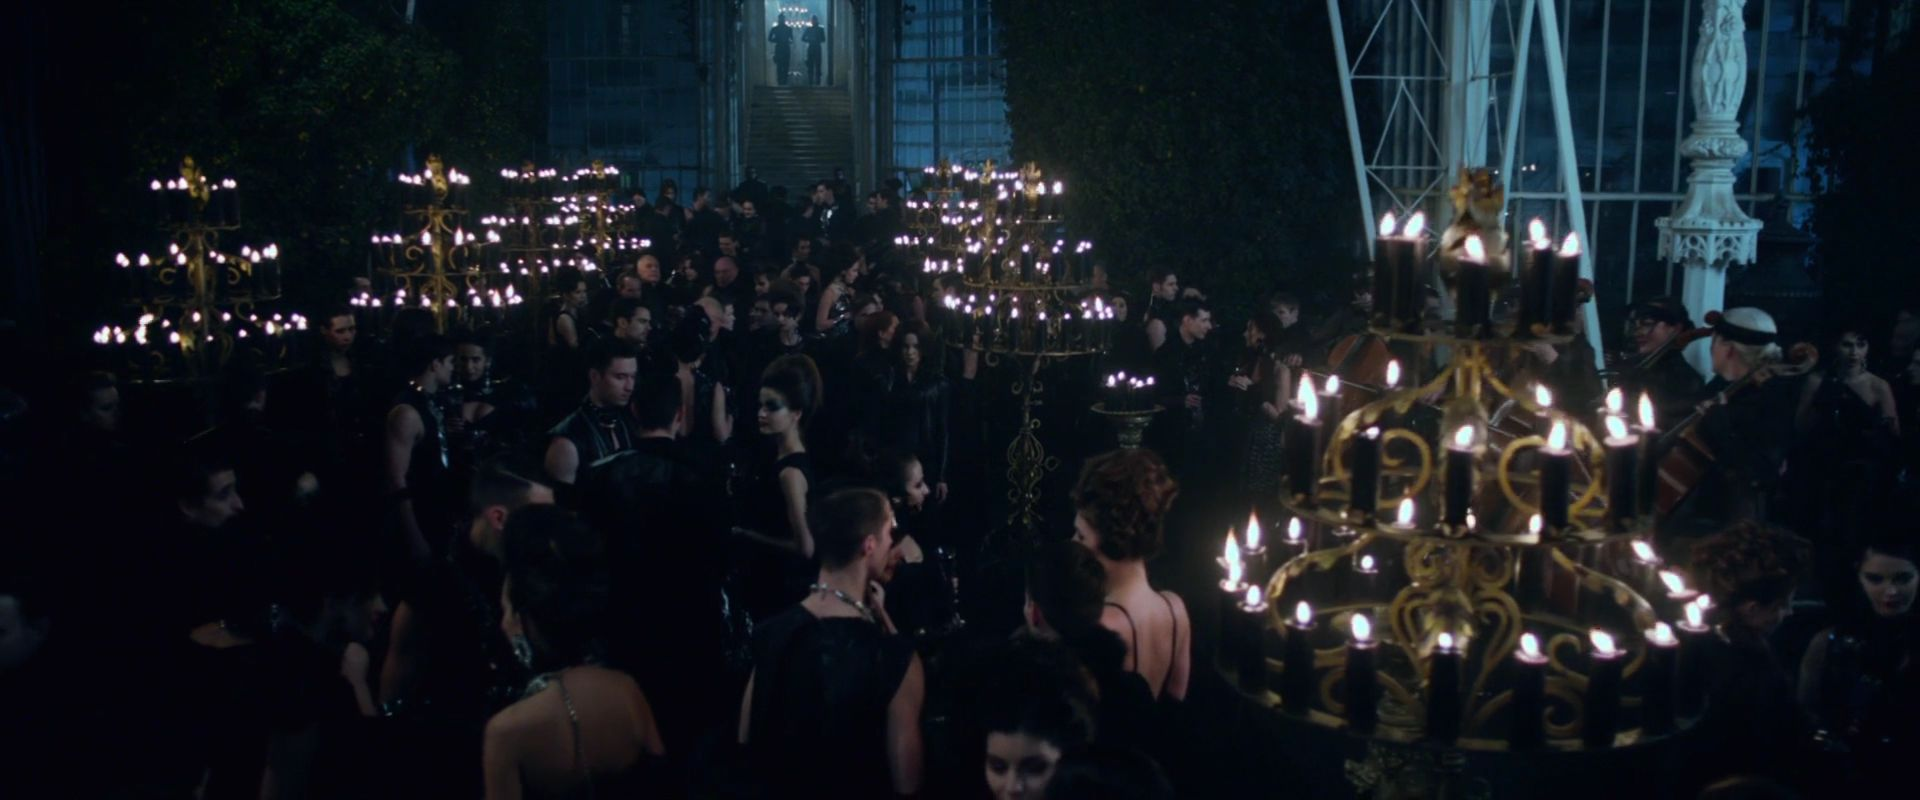 Covens | Underworld Wiki | FANDOM powered by Wikia